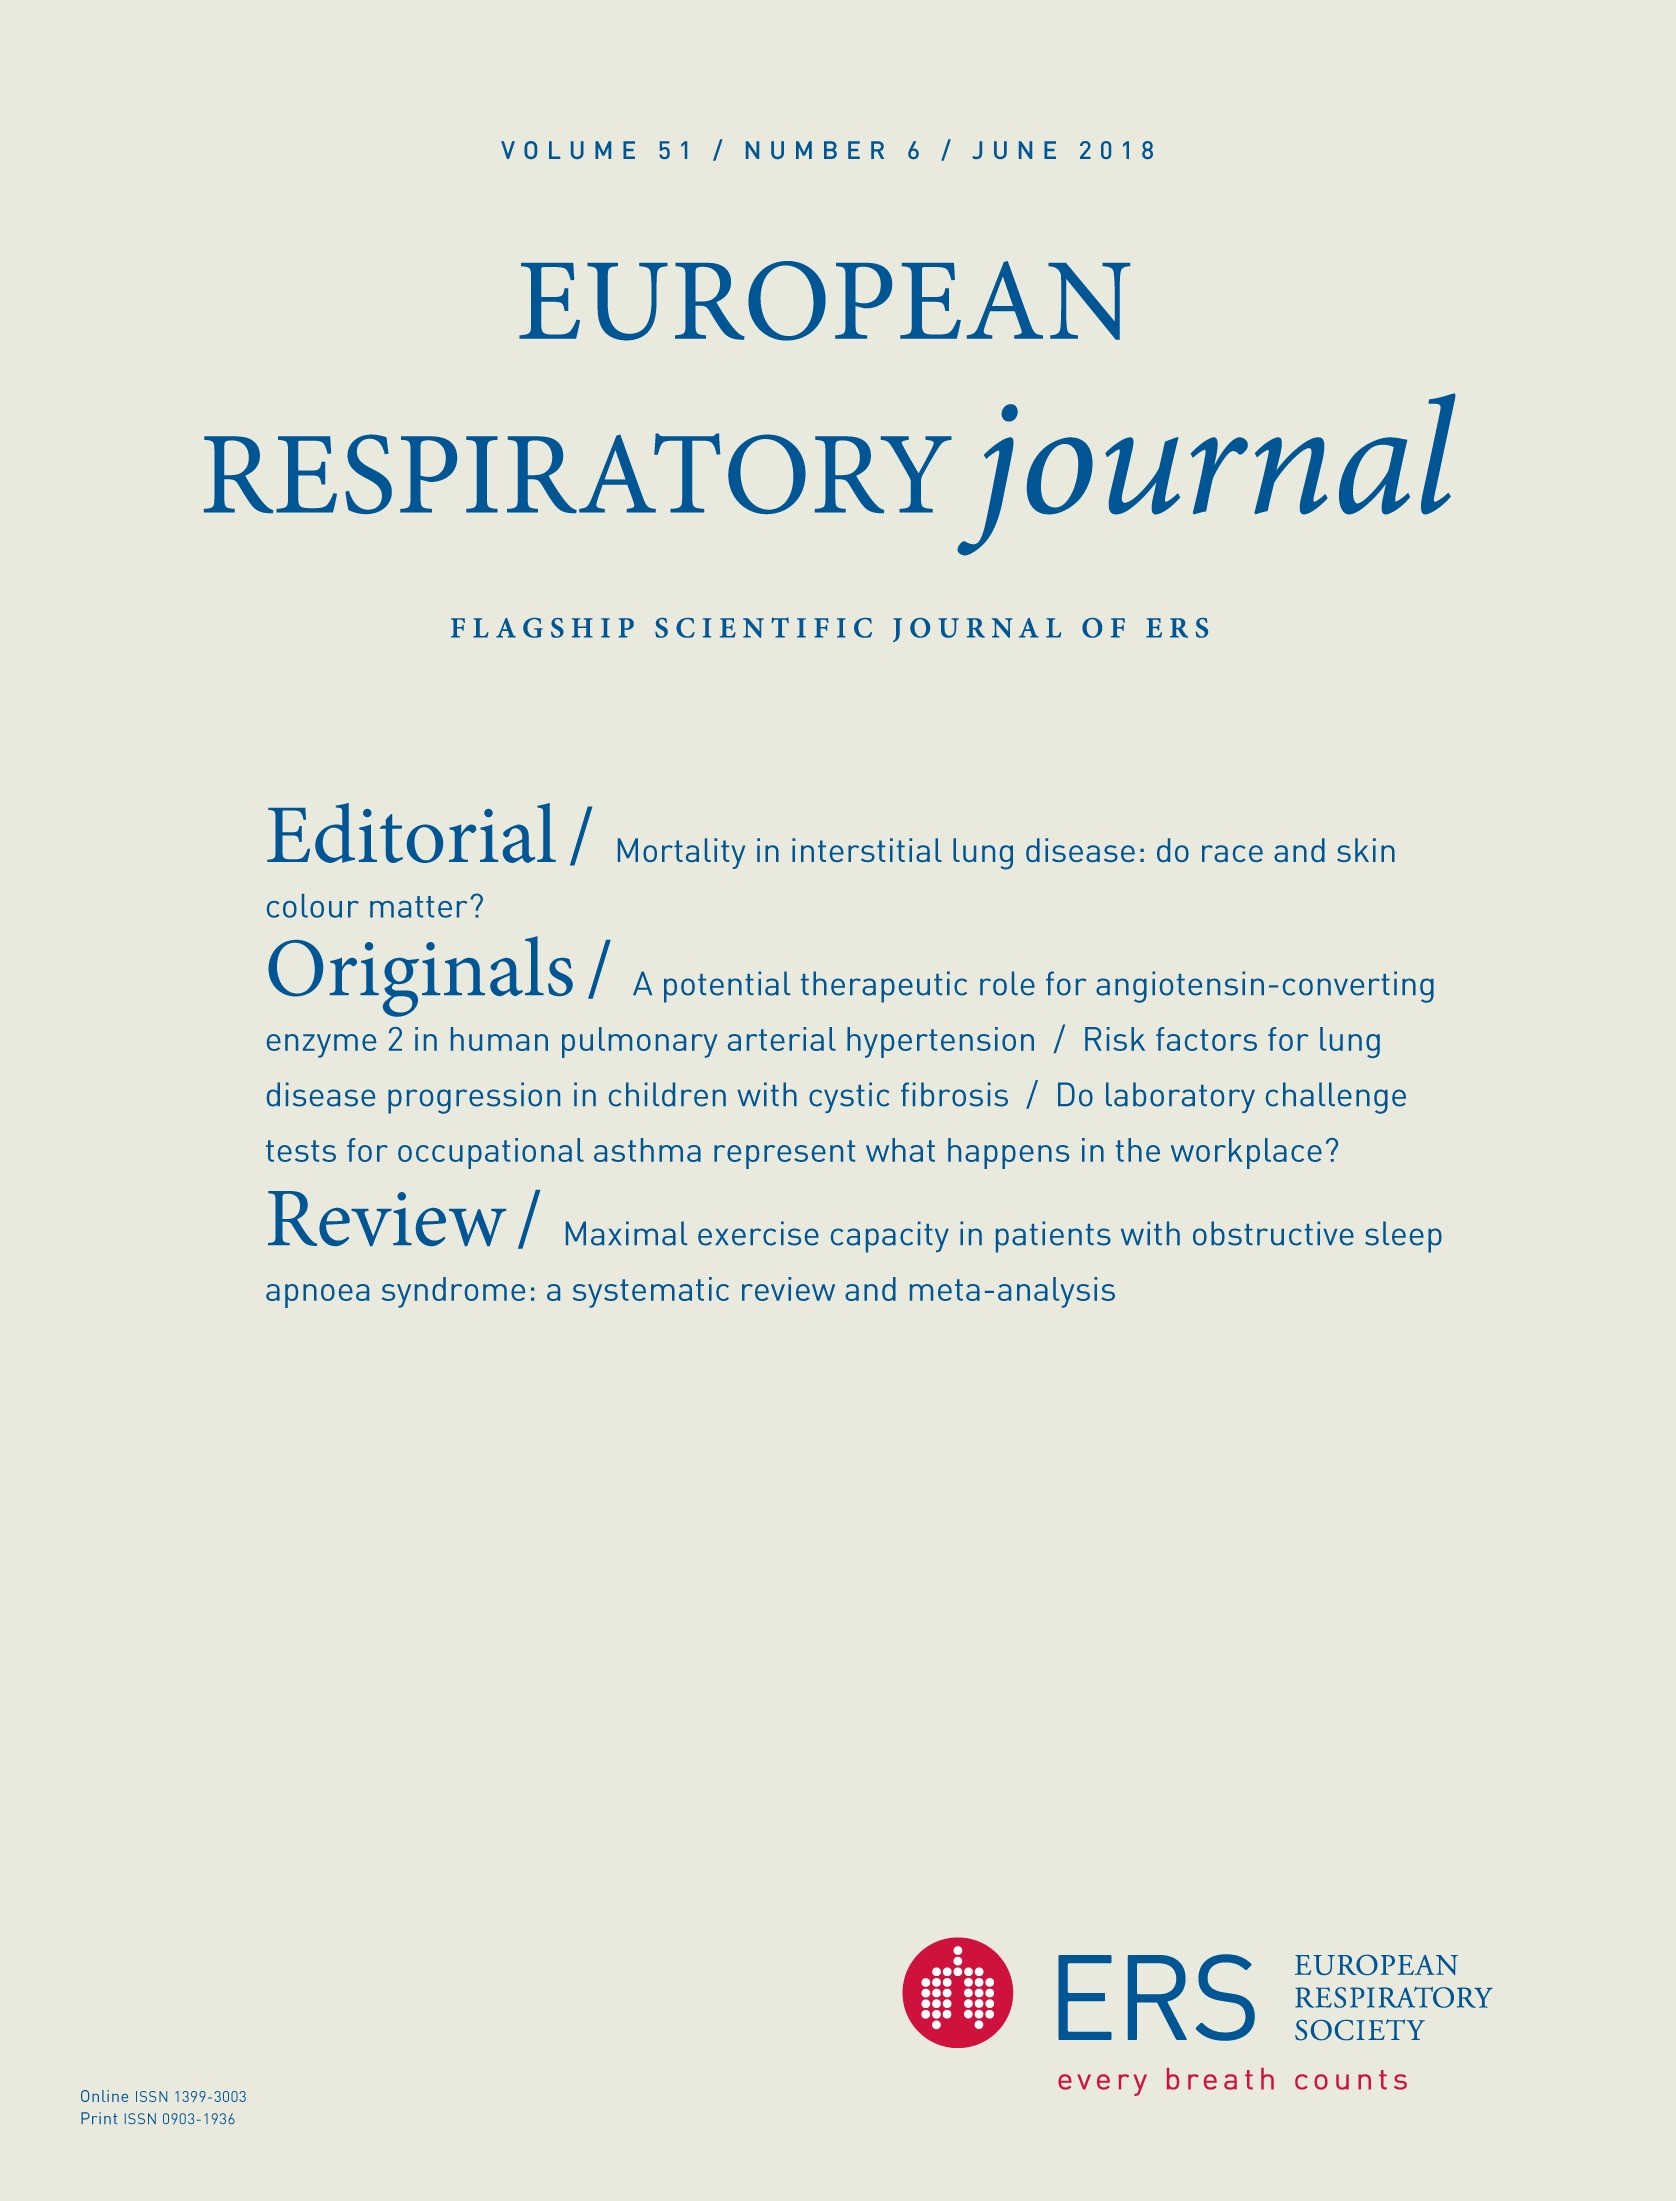 Infant nasal nitric oxide over time: natural evolution and impact of